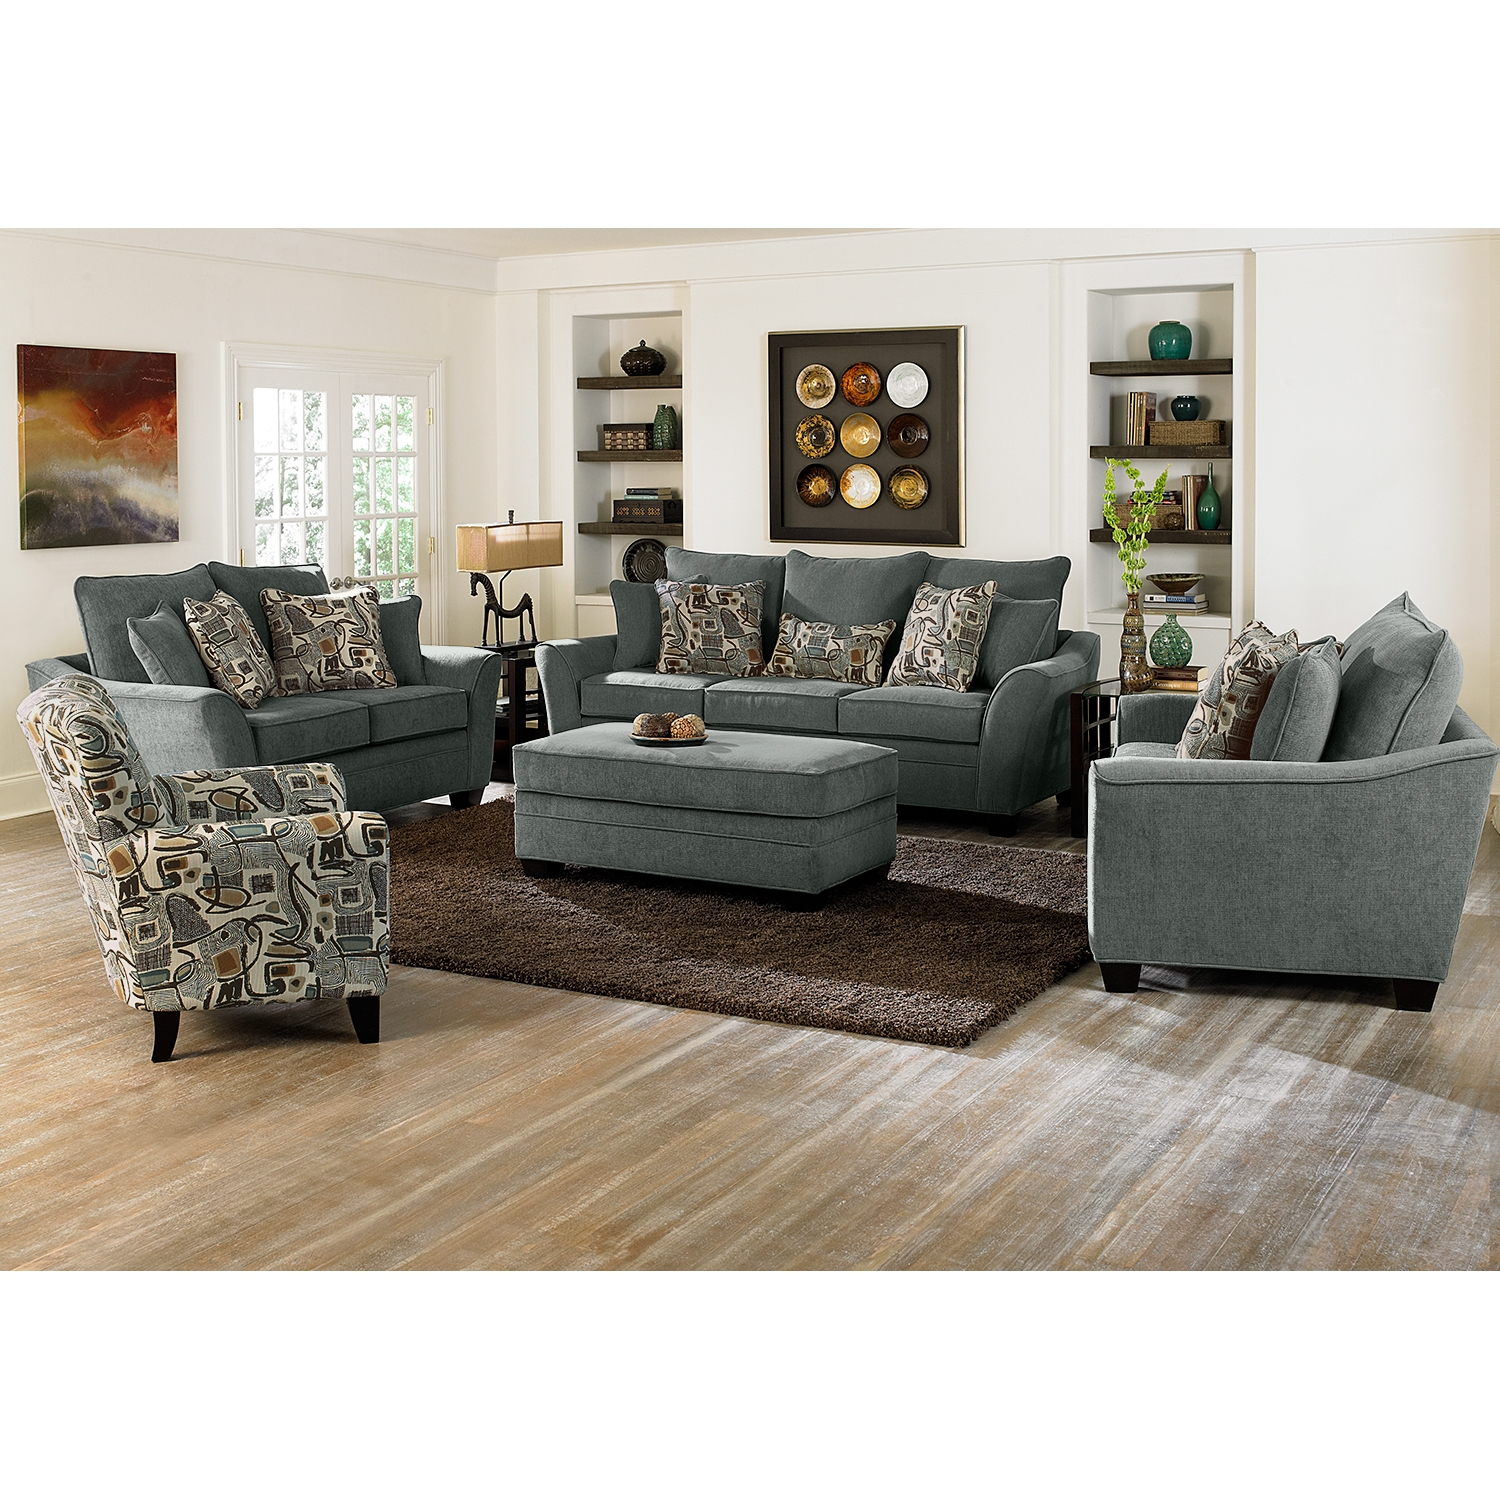 Small Accent Chair With Ottoman Perfect Chairs Ottomans For Living